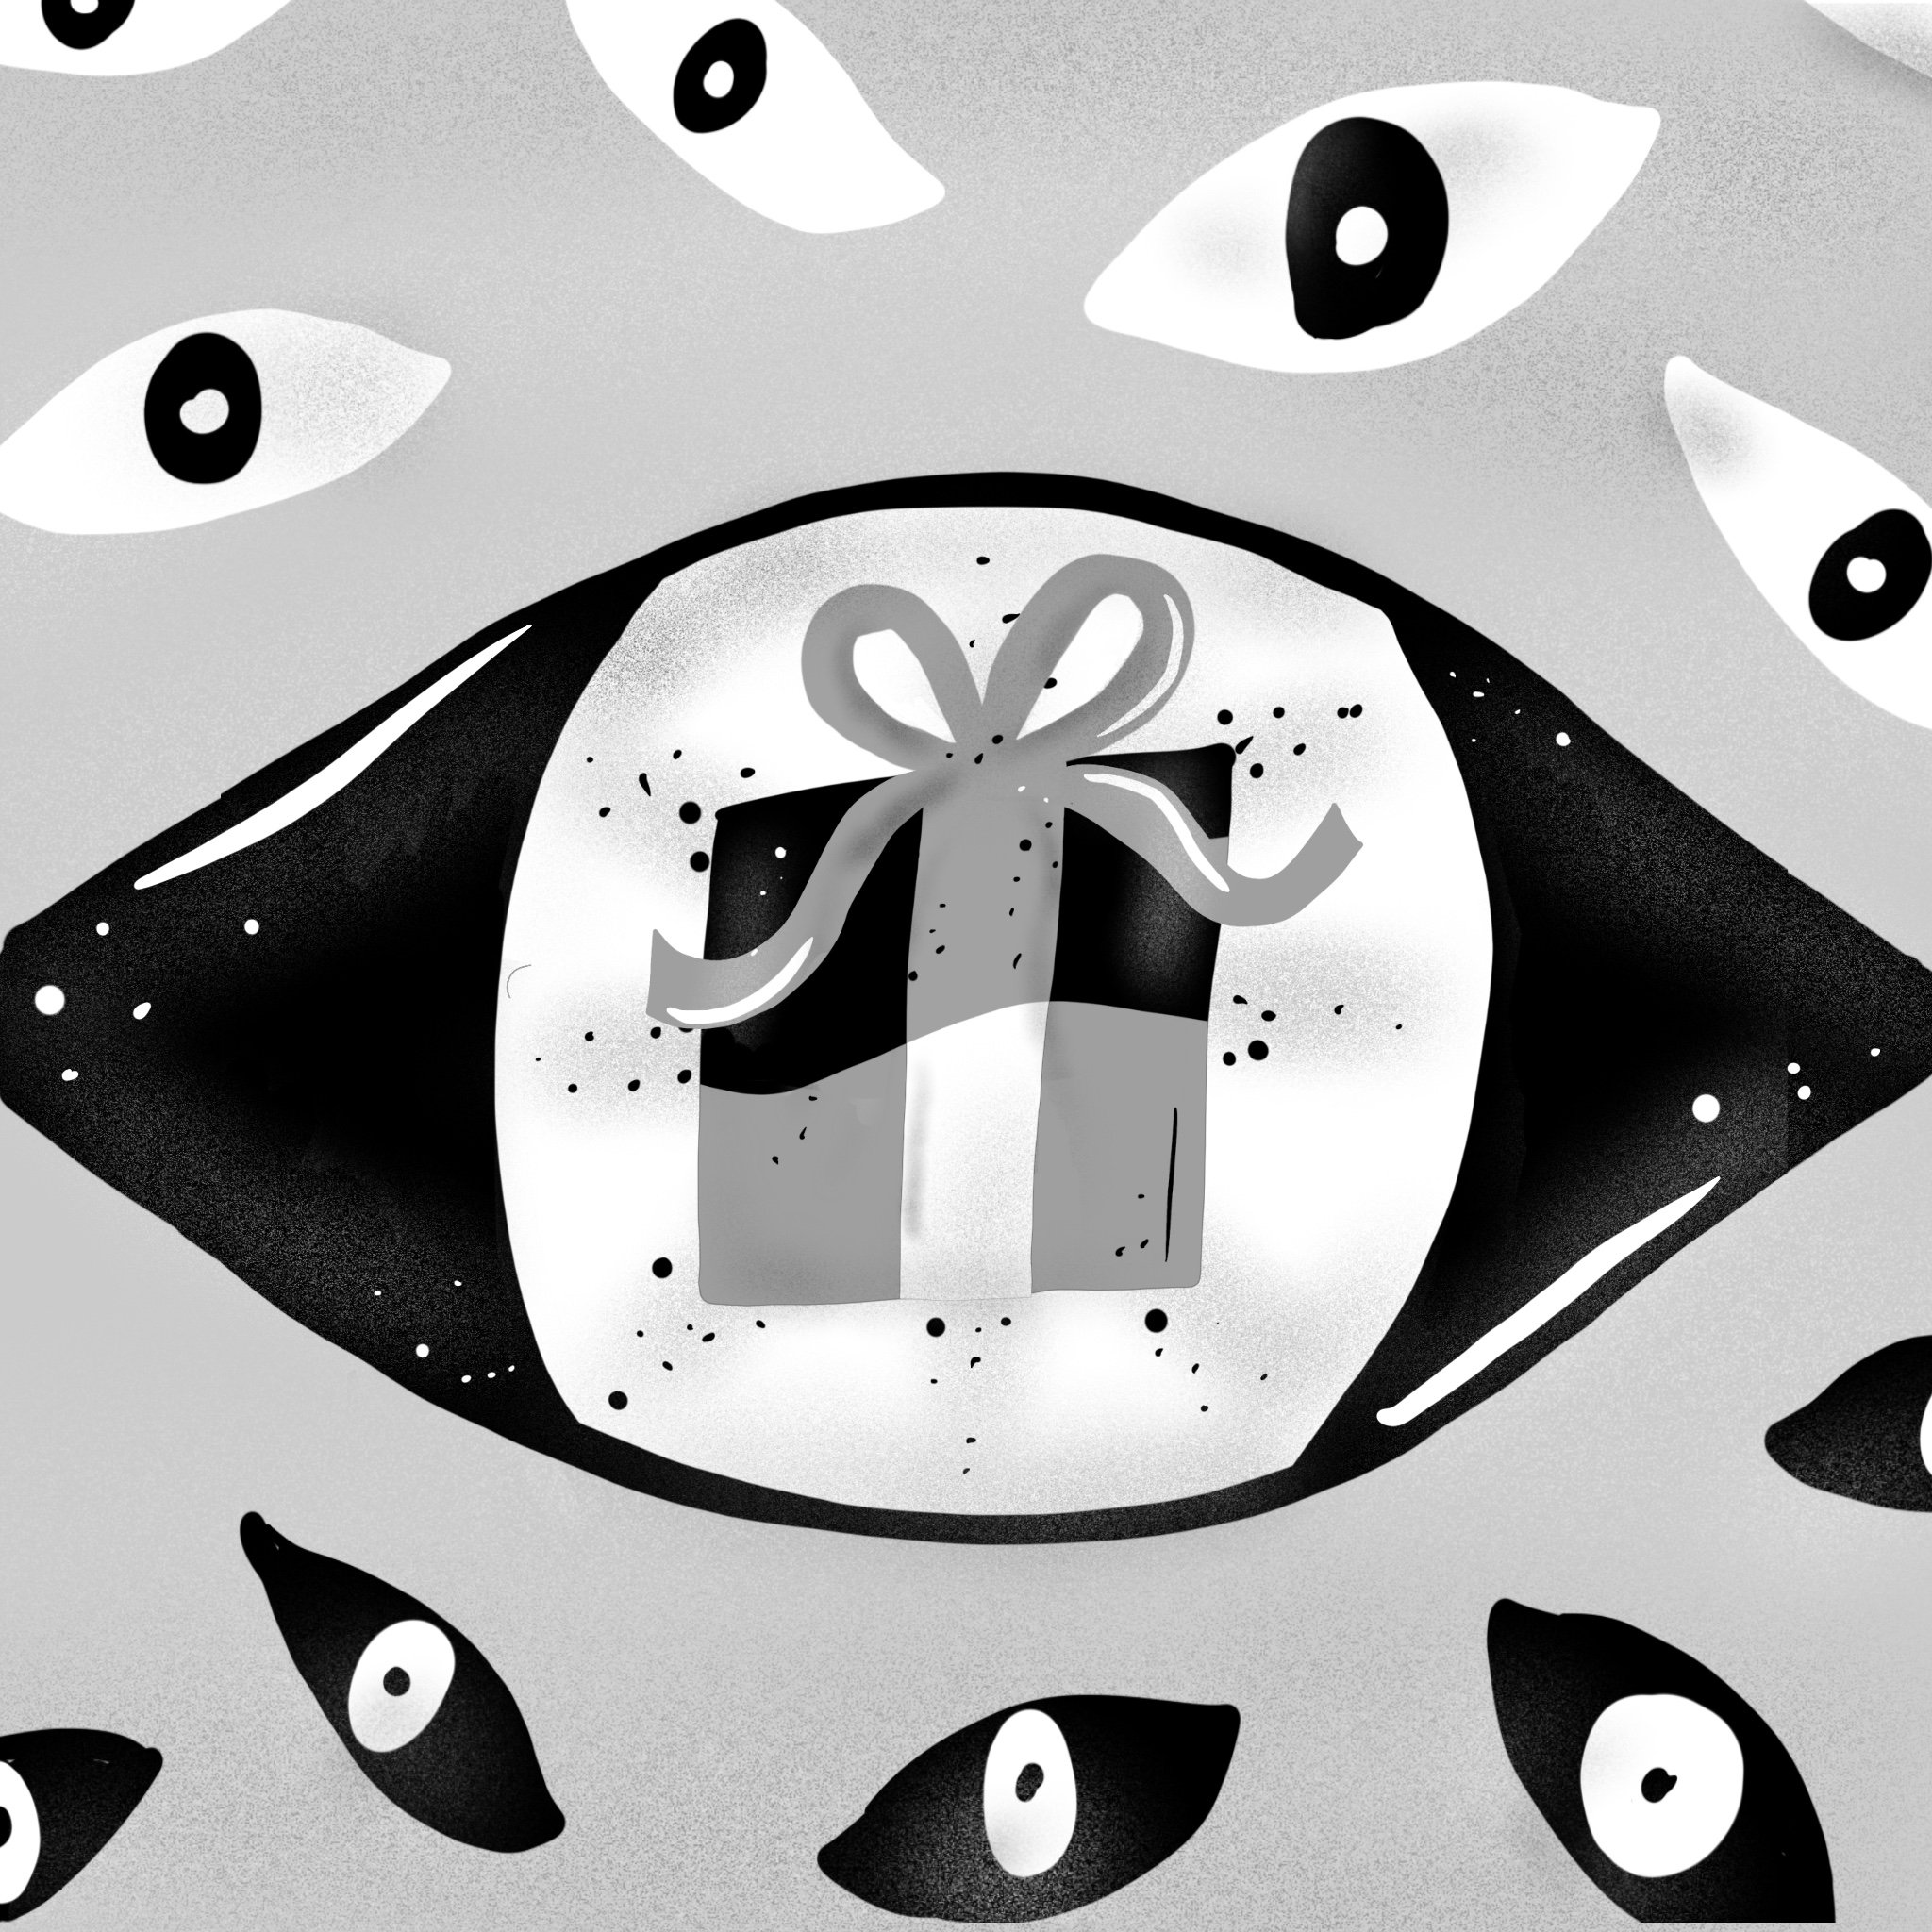 Illustration of an eye with a present in the reflection